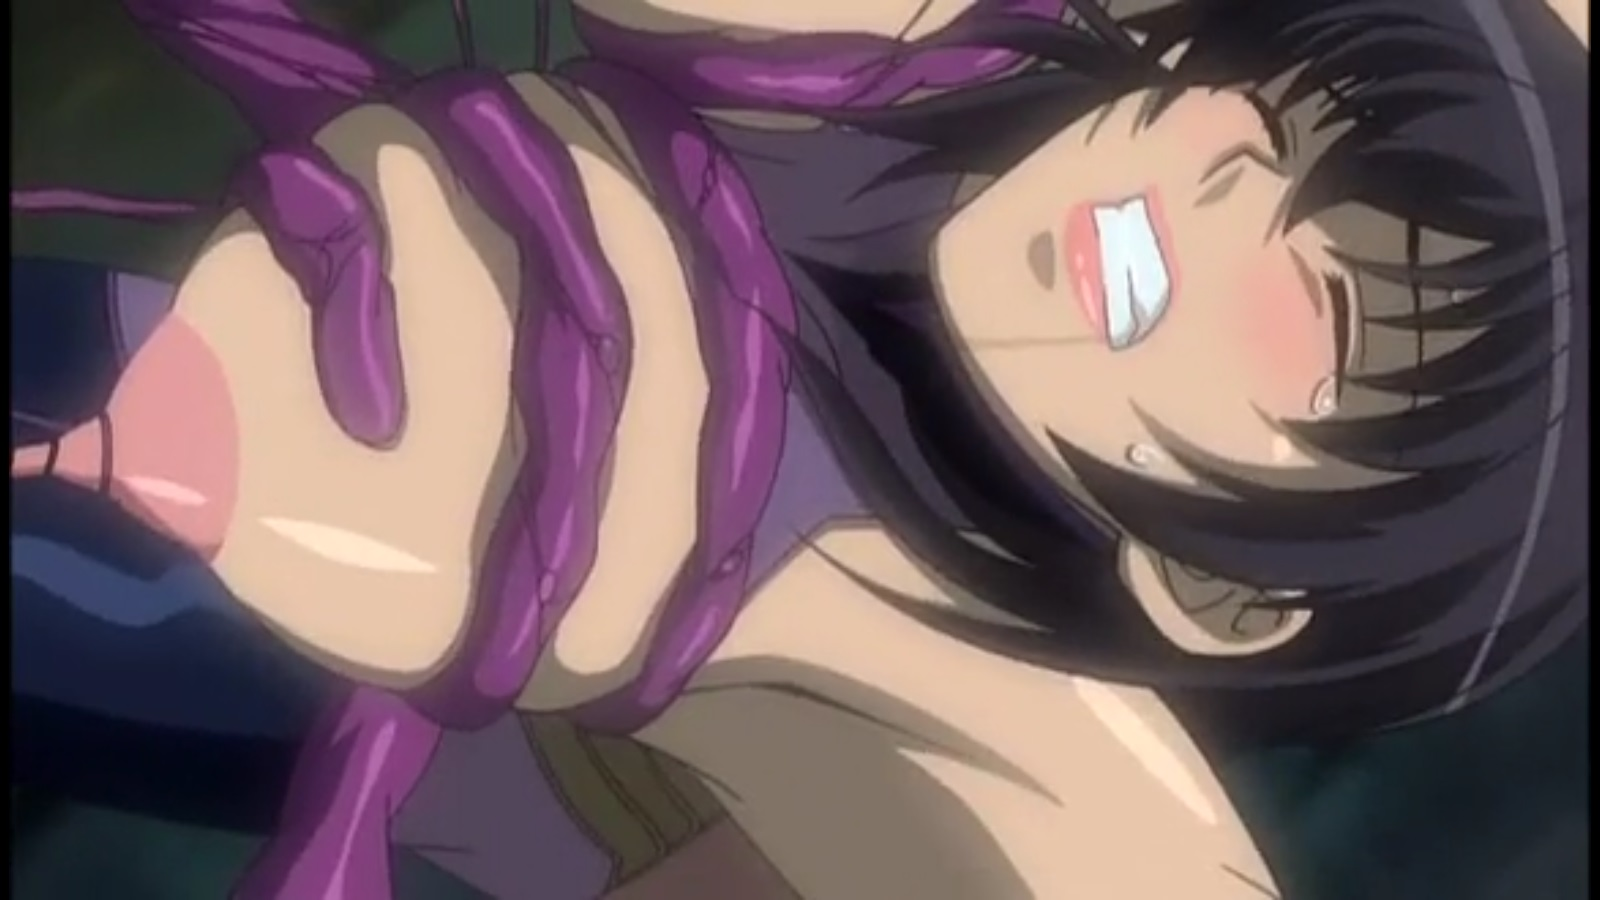 Anime Girl Sucking Penis » cool animated film anime porn tentacle and witches 1 movie